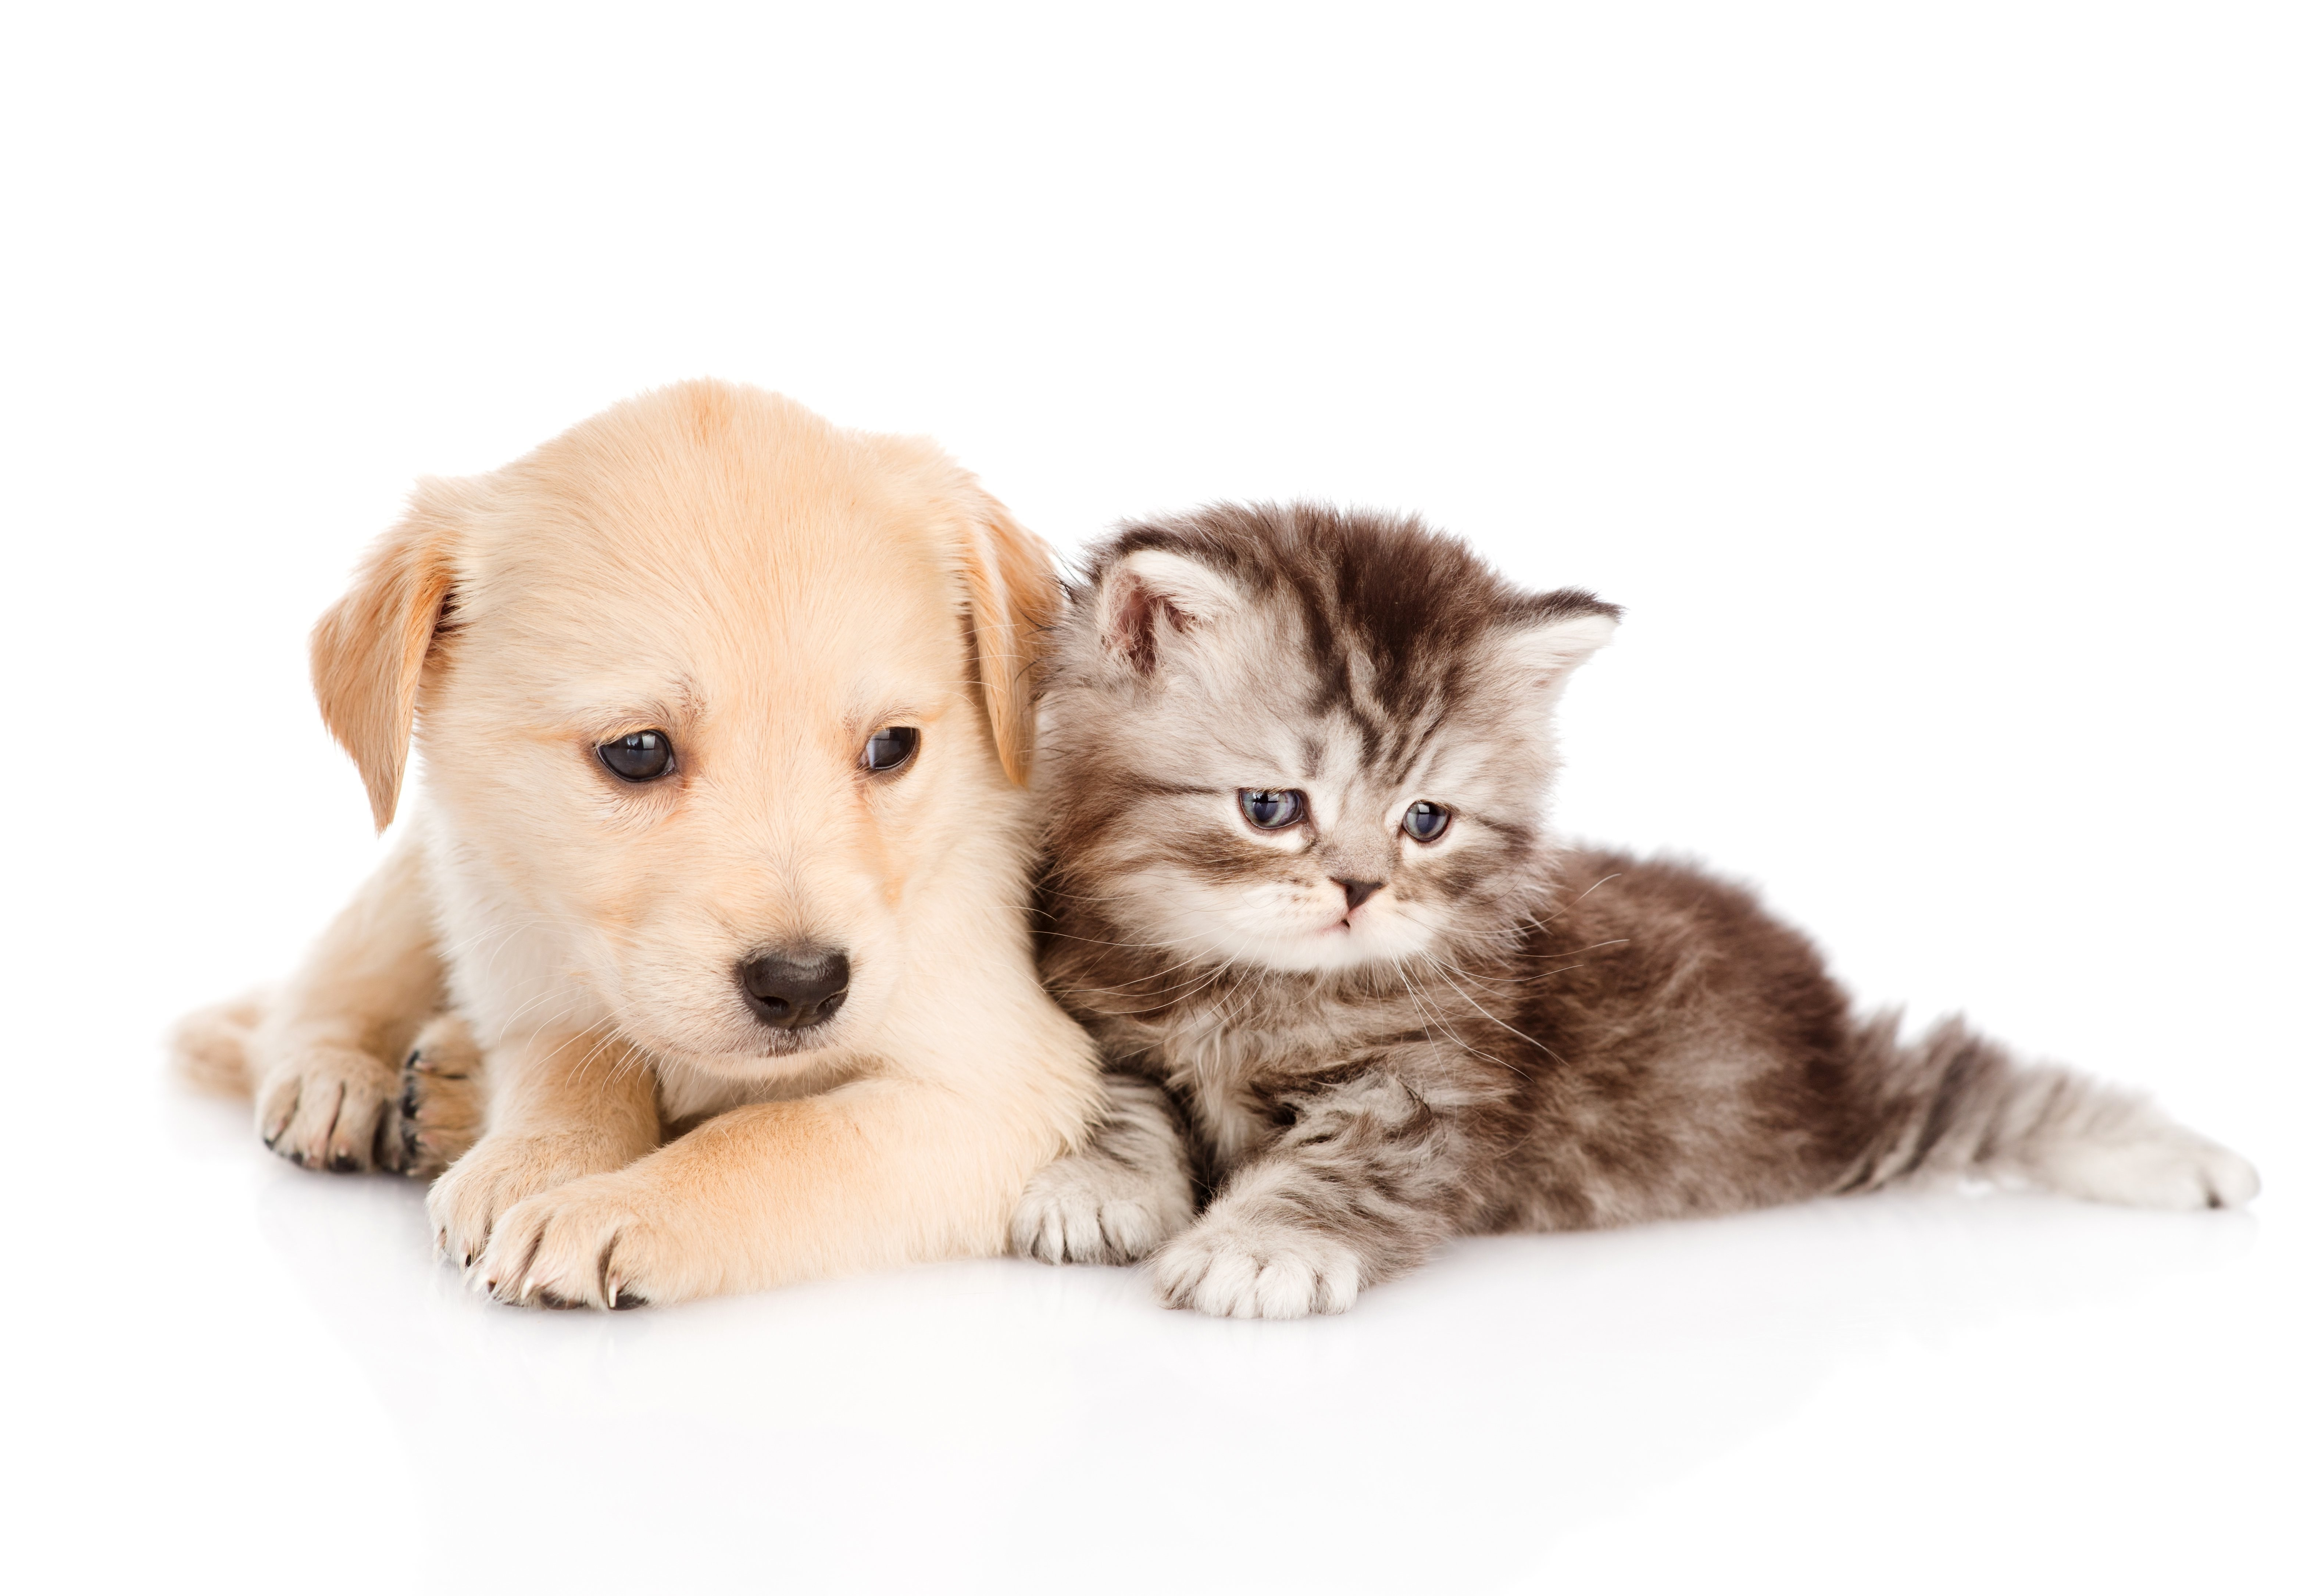 Dog And Cat Wallpaper Cute Wallpapers Kittens Puppies 6256x4341